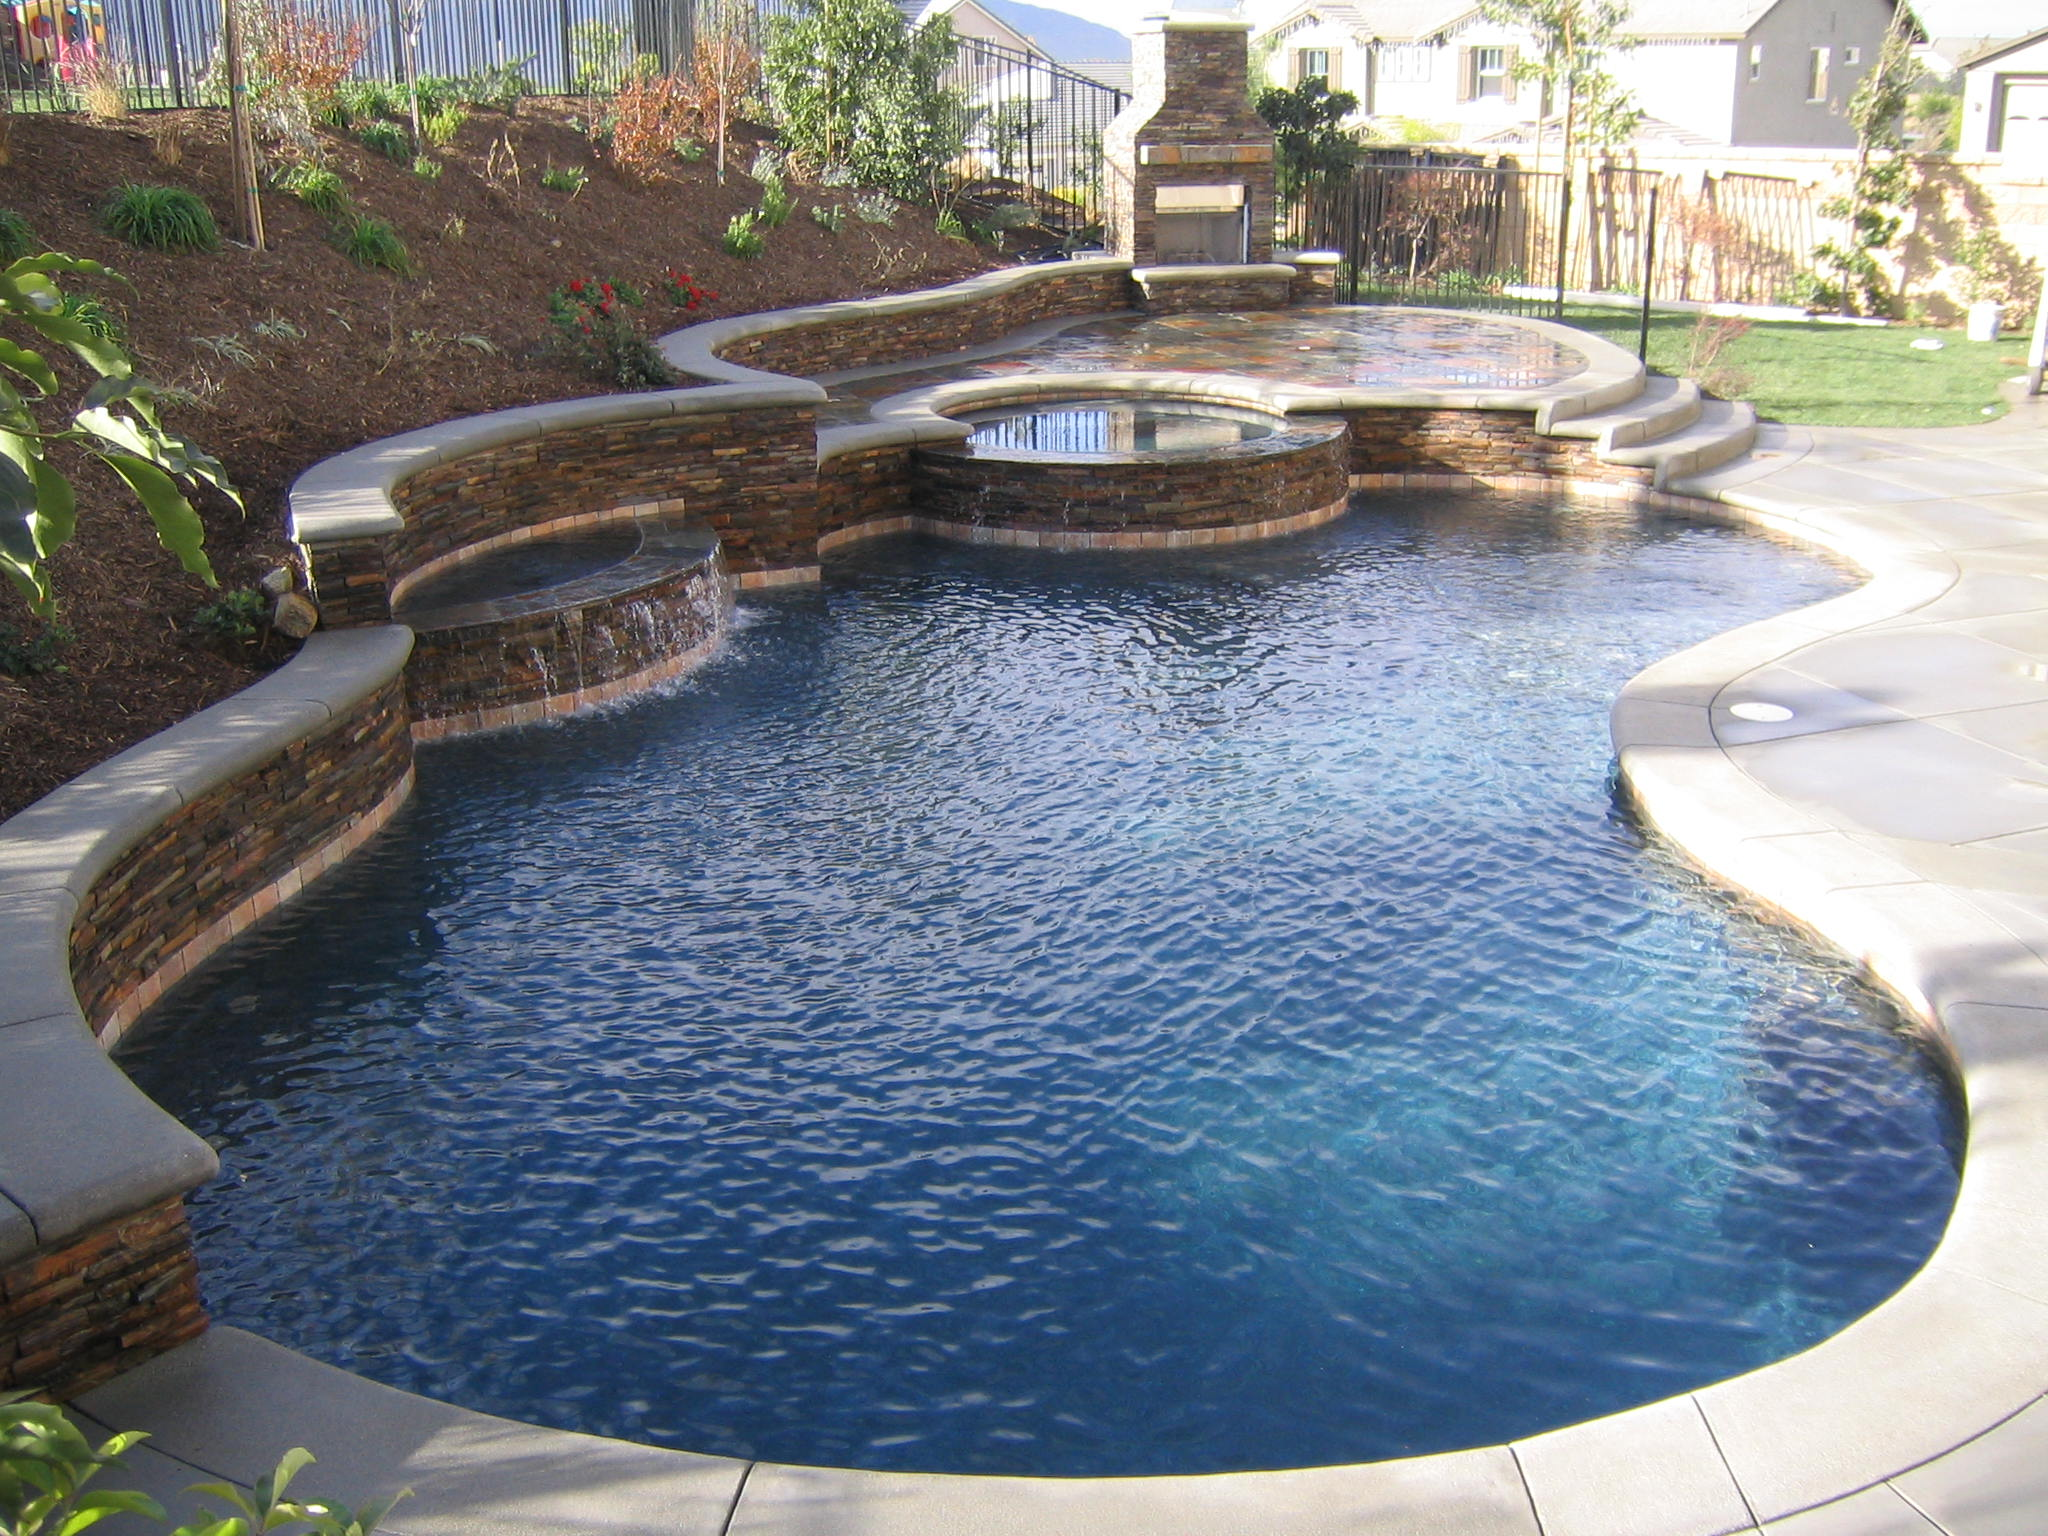 accesories-decors-exterior-edge-landscape-design-with-freeform-pool-ideas-and-rounded-outside-jacuzzi-and-concrete-floors-around-as-inspiring-modern-small-swimming-pool-designs-lovely-choices-p